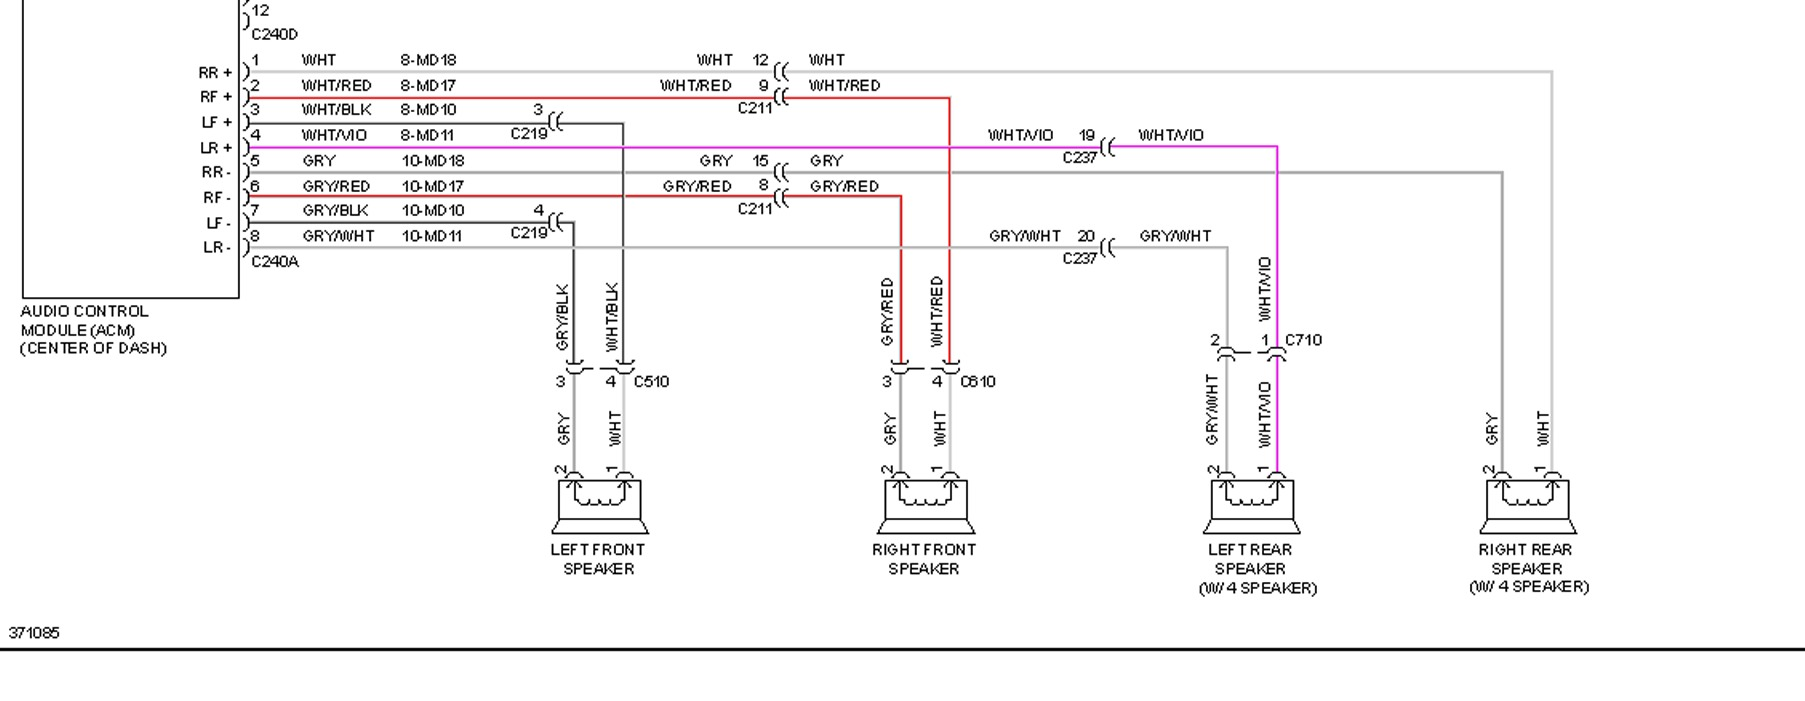 Ford Transit Connect Factory Radio Wiring - Wiring Diagrams ... on